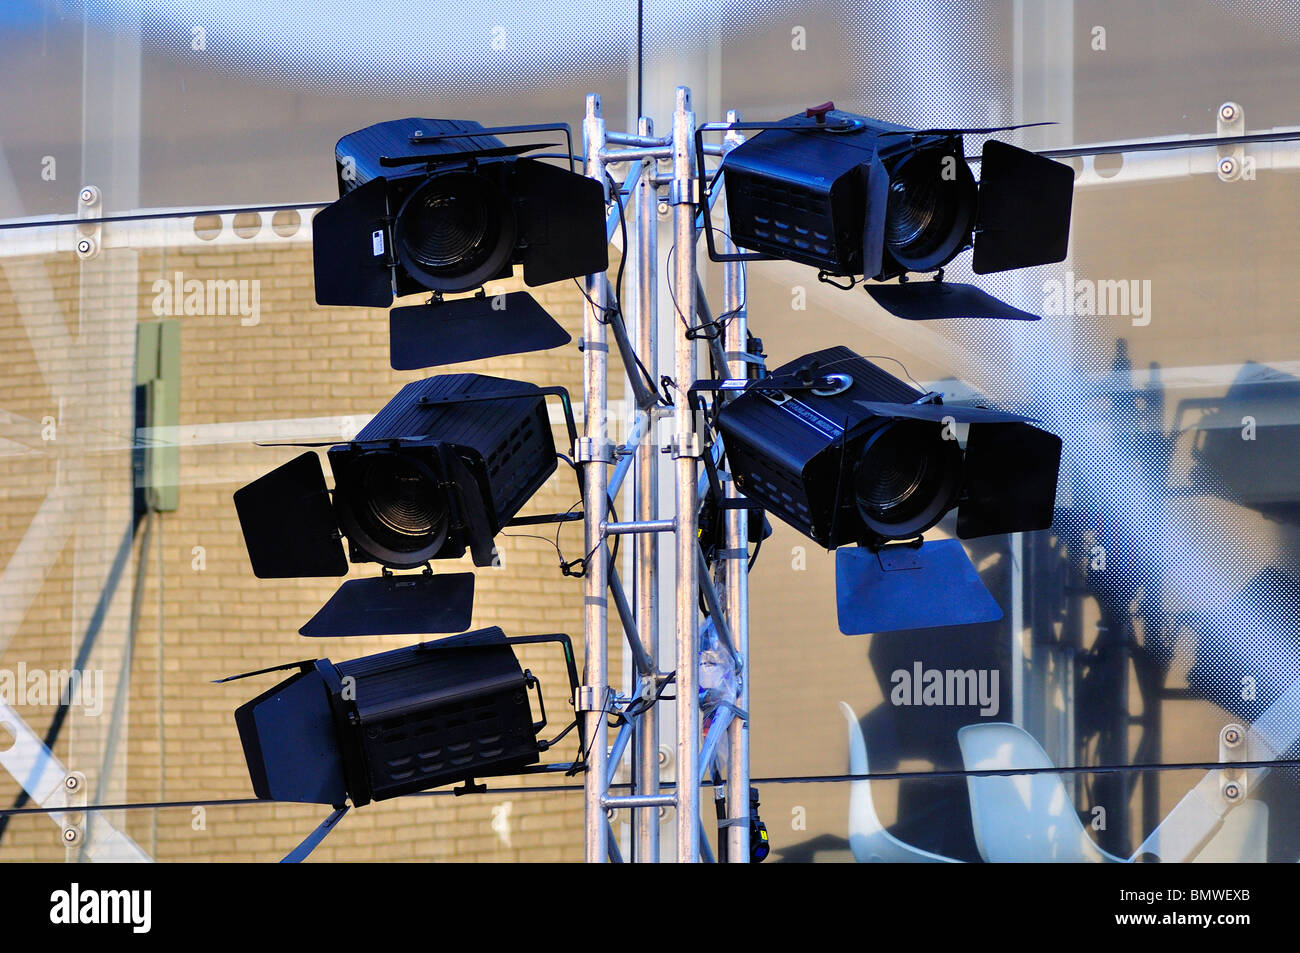 Spot Lights at the British Film Institute - Stock Image